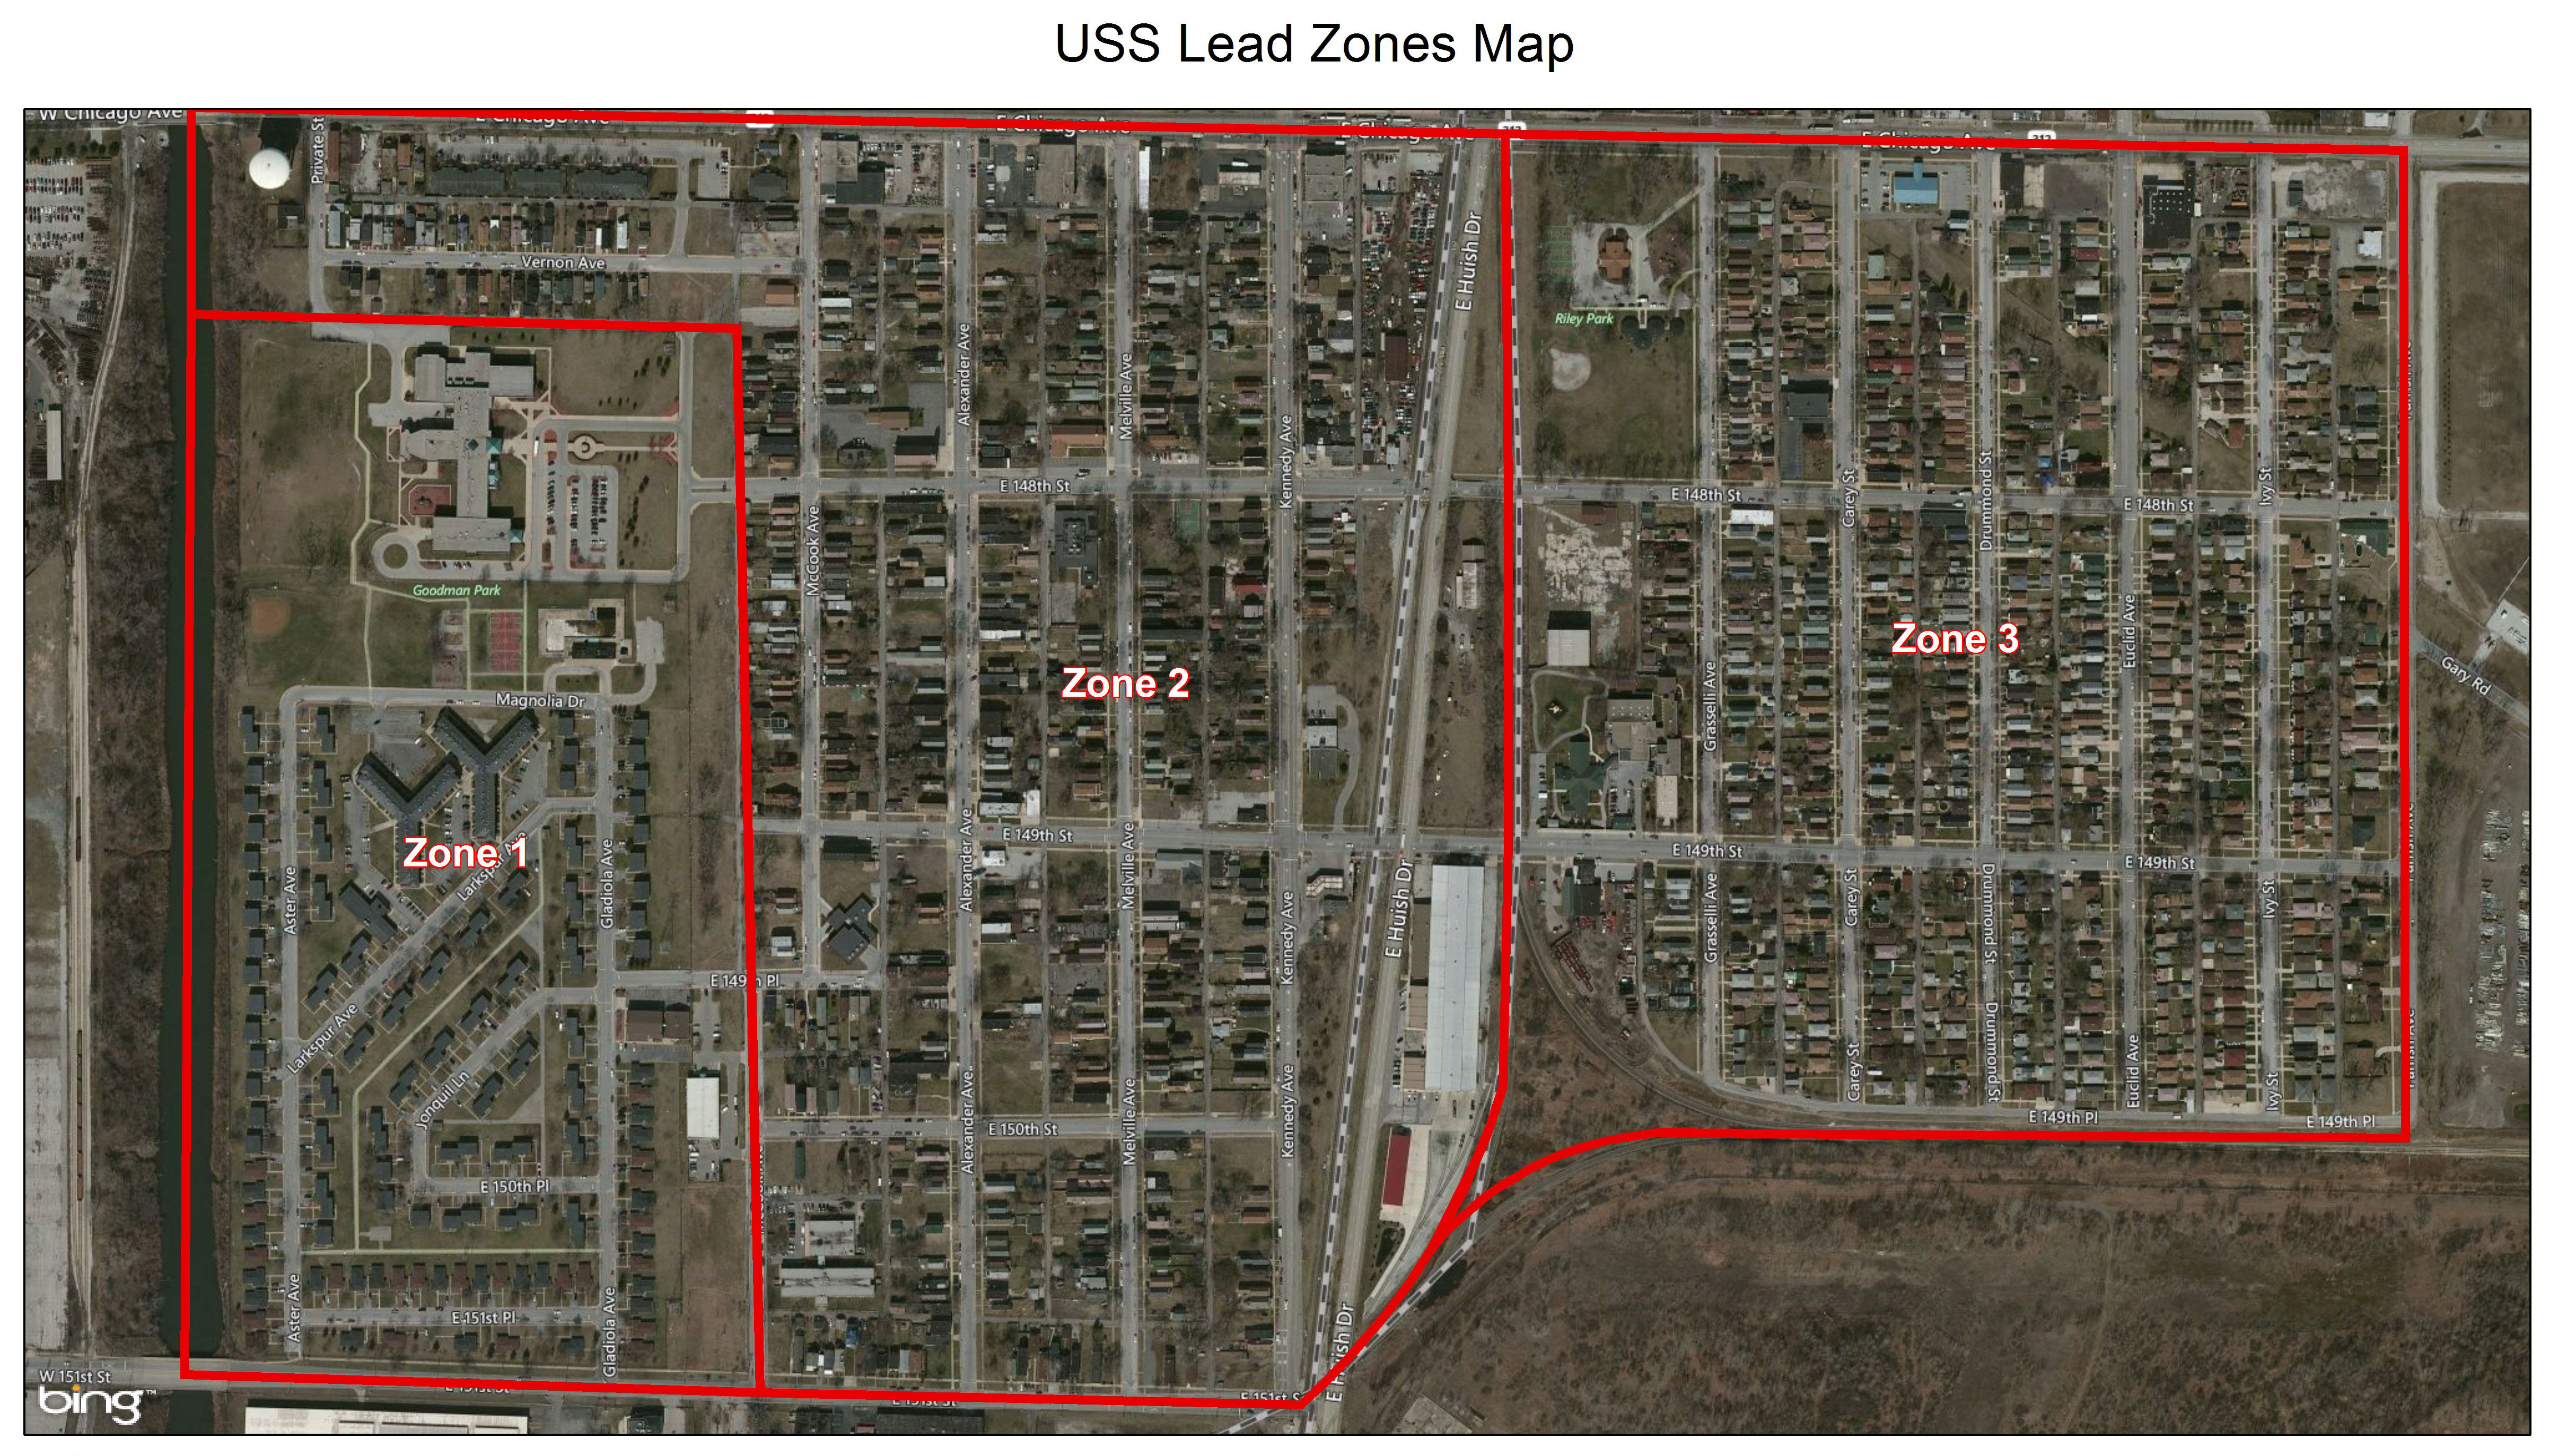 uss lead superfund site The usefulness of the epa in cleaning up superfund sites, a creation which often gets credited to lois gibbs and is a label for toxic waste removal as a government and corporate responsibility, is severely unfunded.